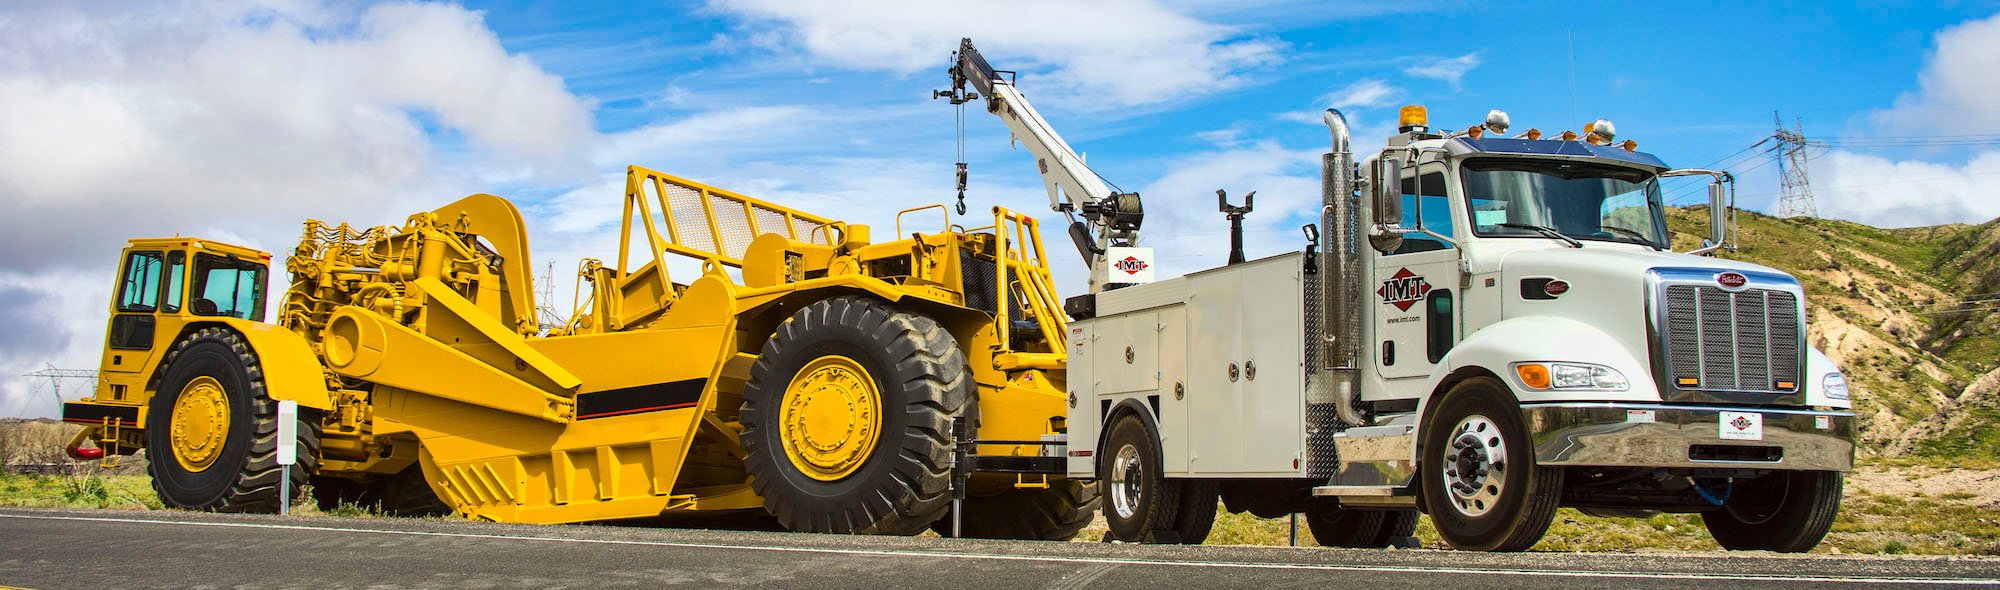 IMT service trucks for sale with crane